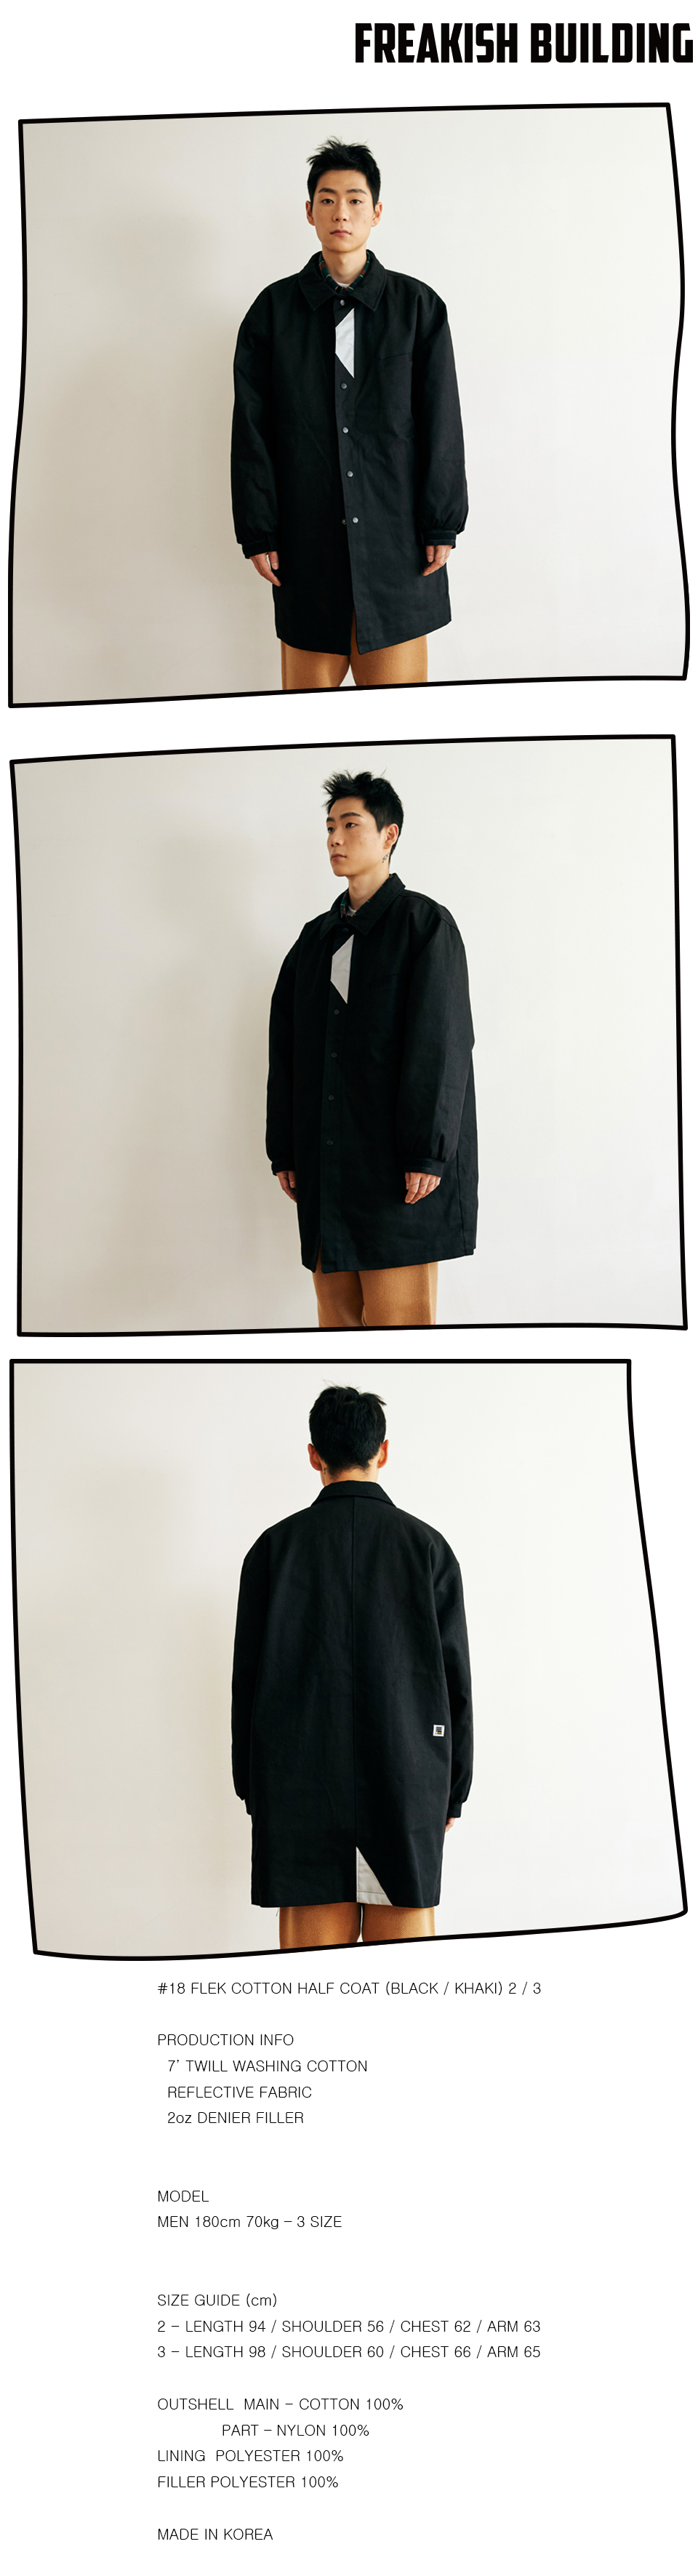 #18 FLEK COTTON HALF COAT (BLACK) 02.jpg